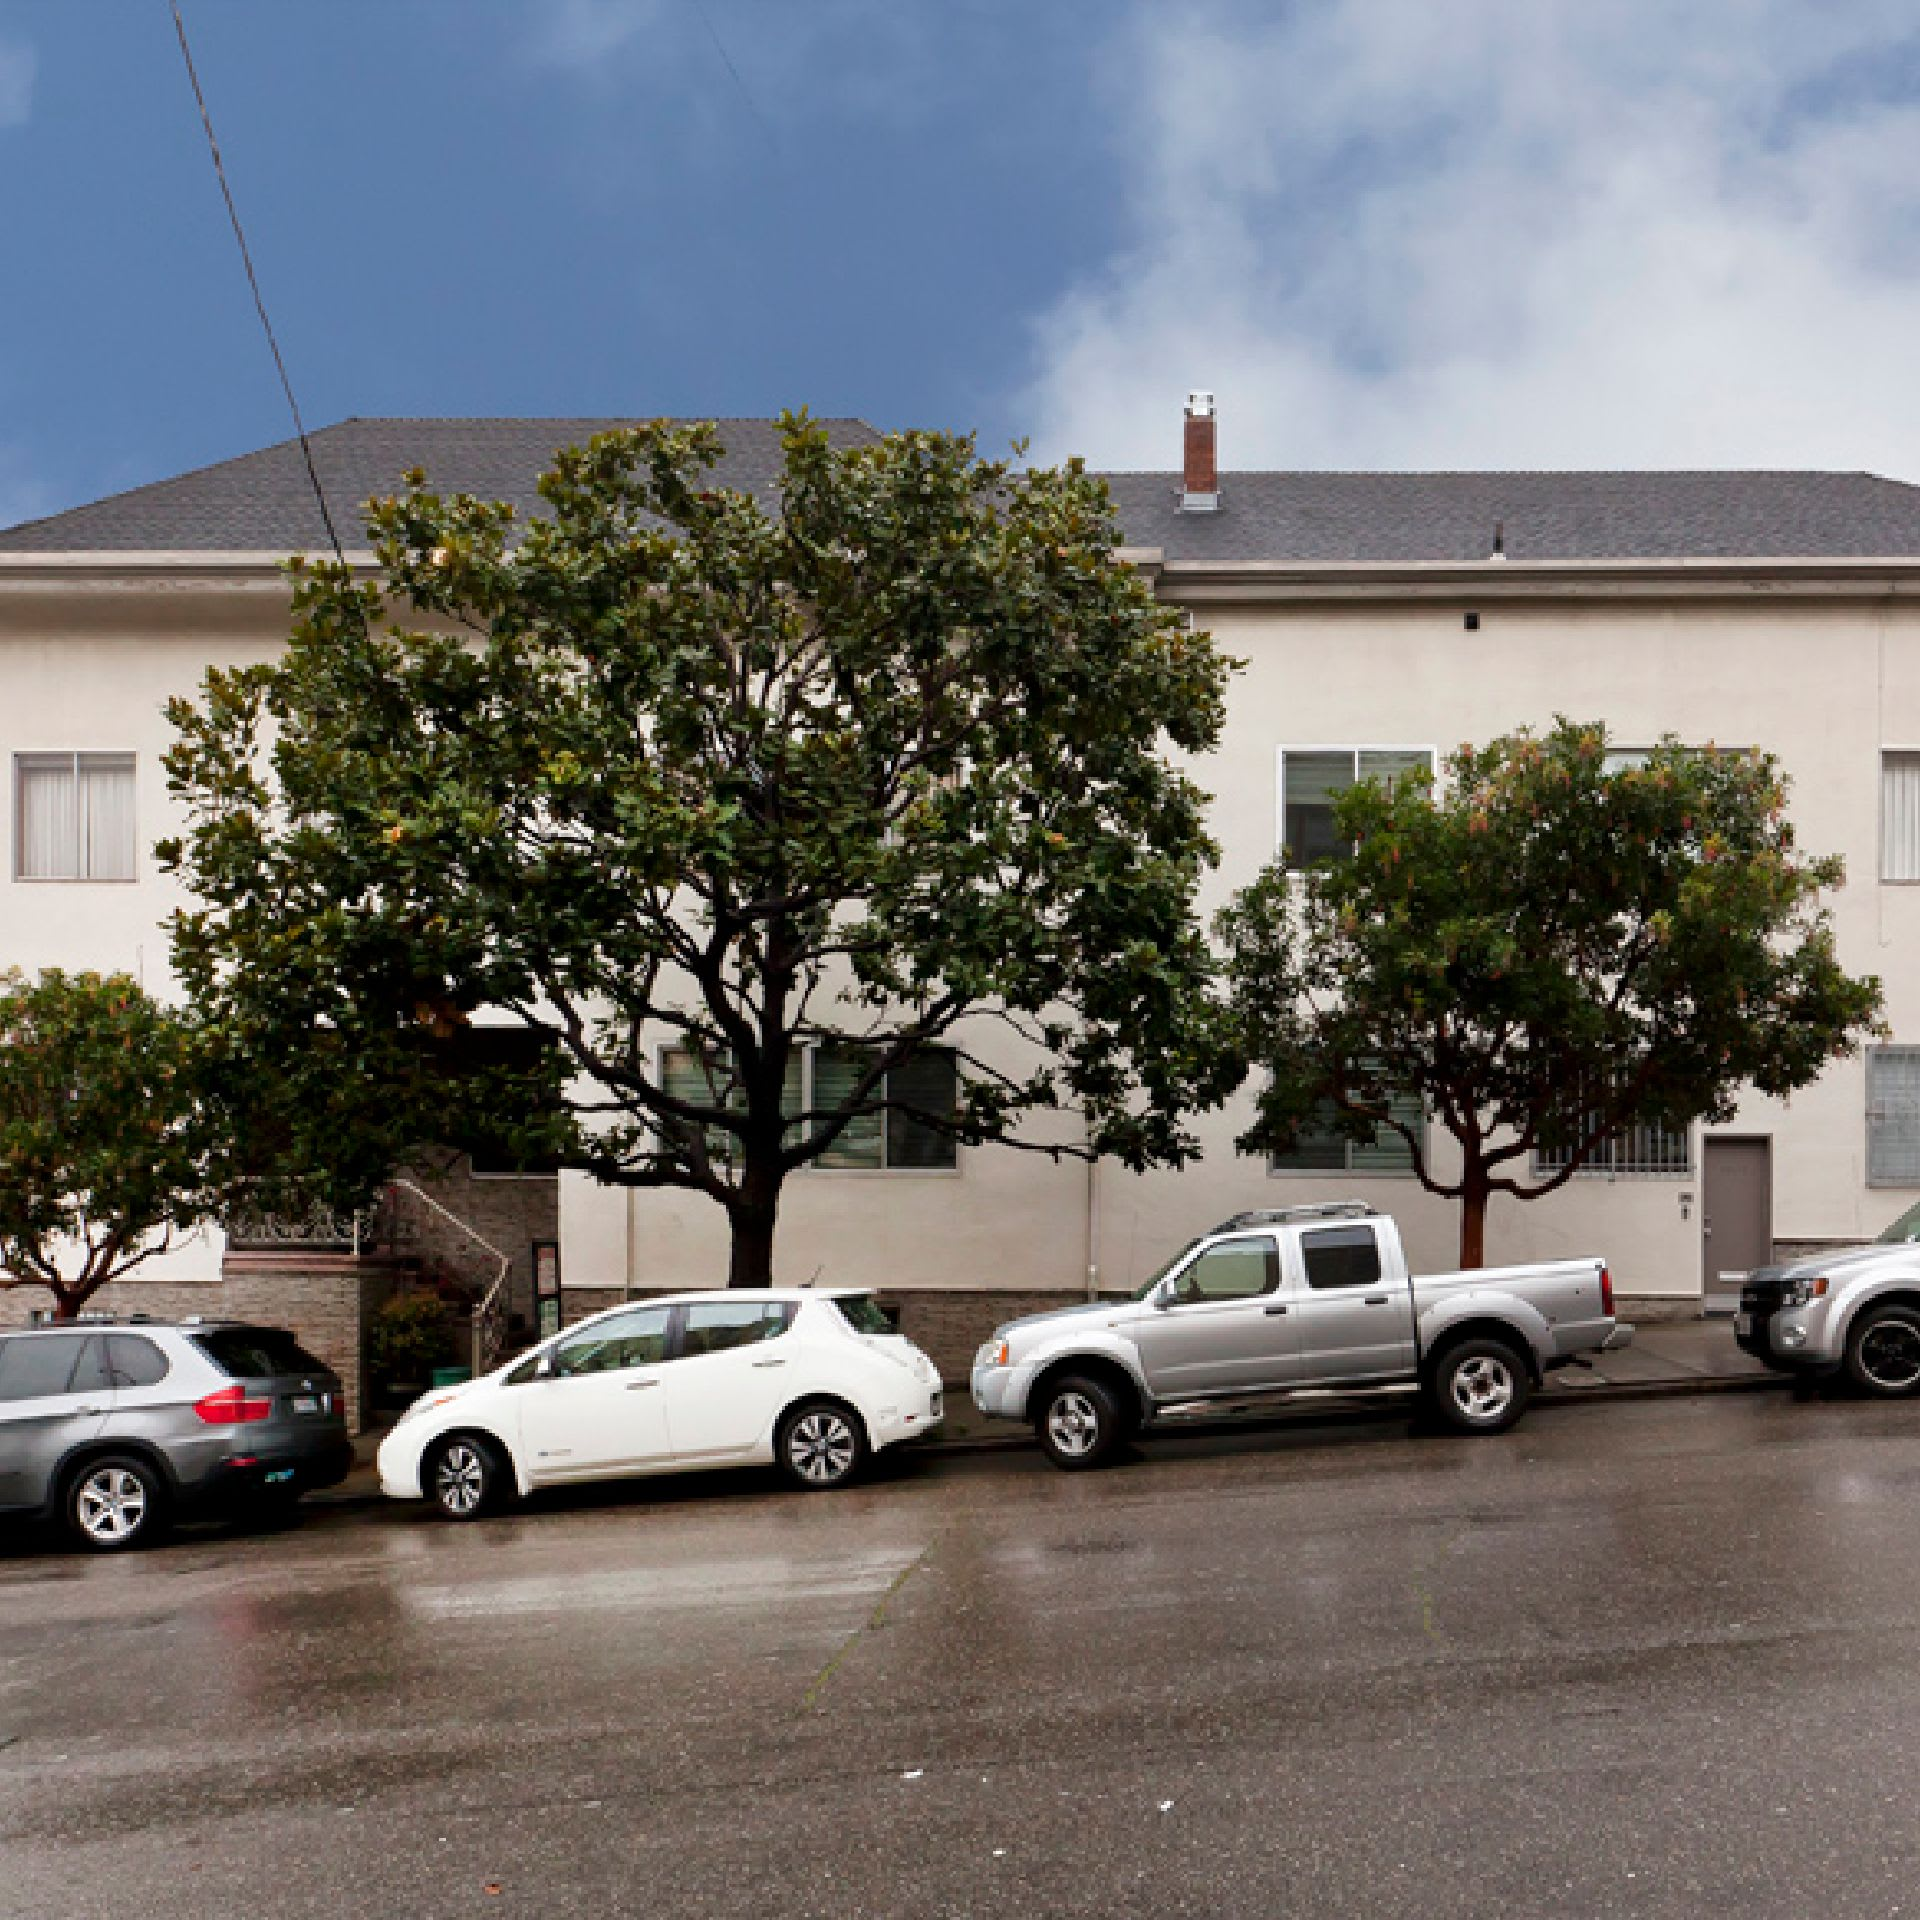 4BR/2BA flat in Cow Hollow